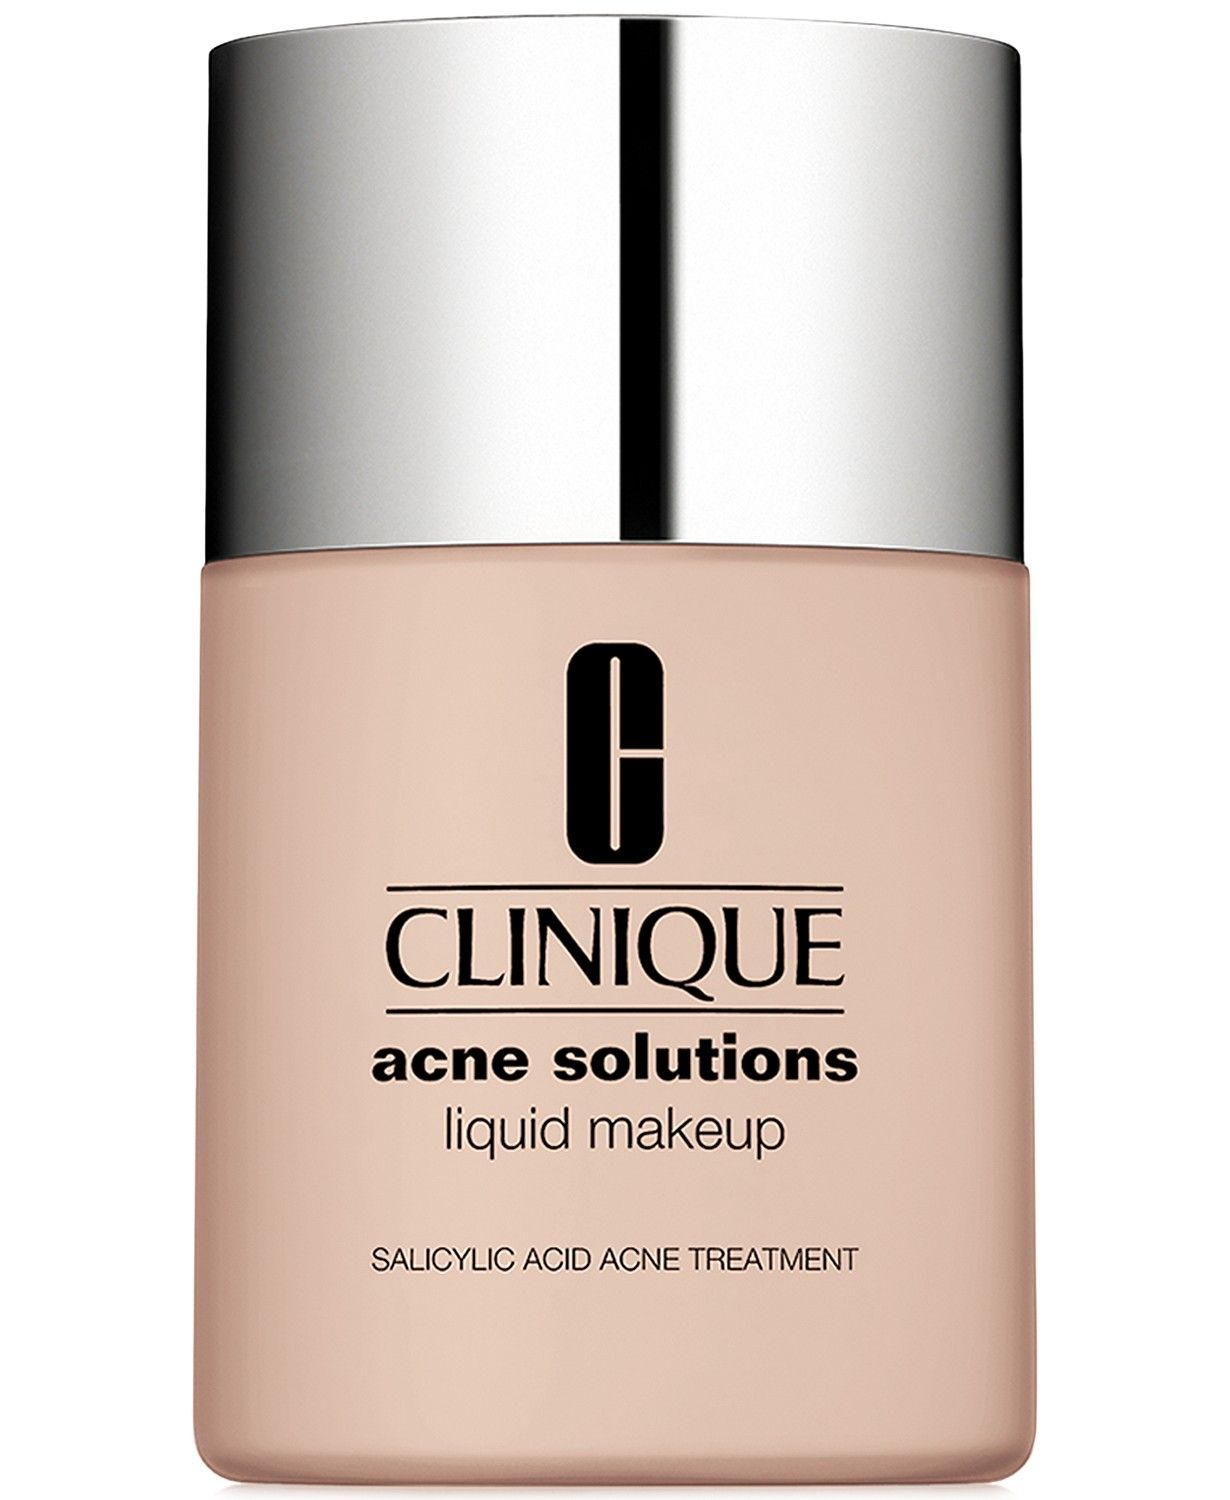 No Need To Spend A Fortune On These: These Are The Oily Skin-approved Foundations I Use To Stay